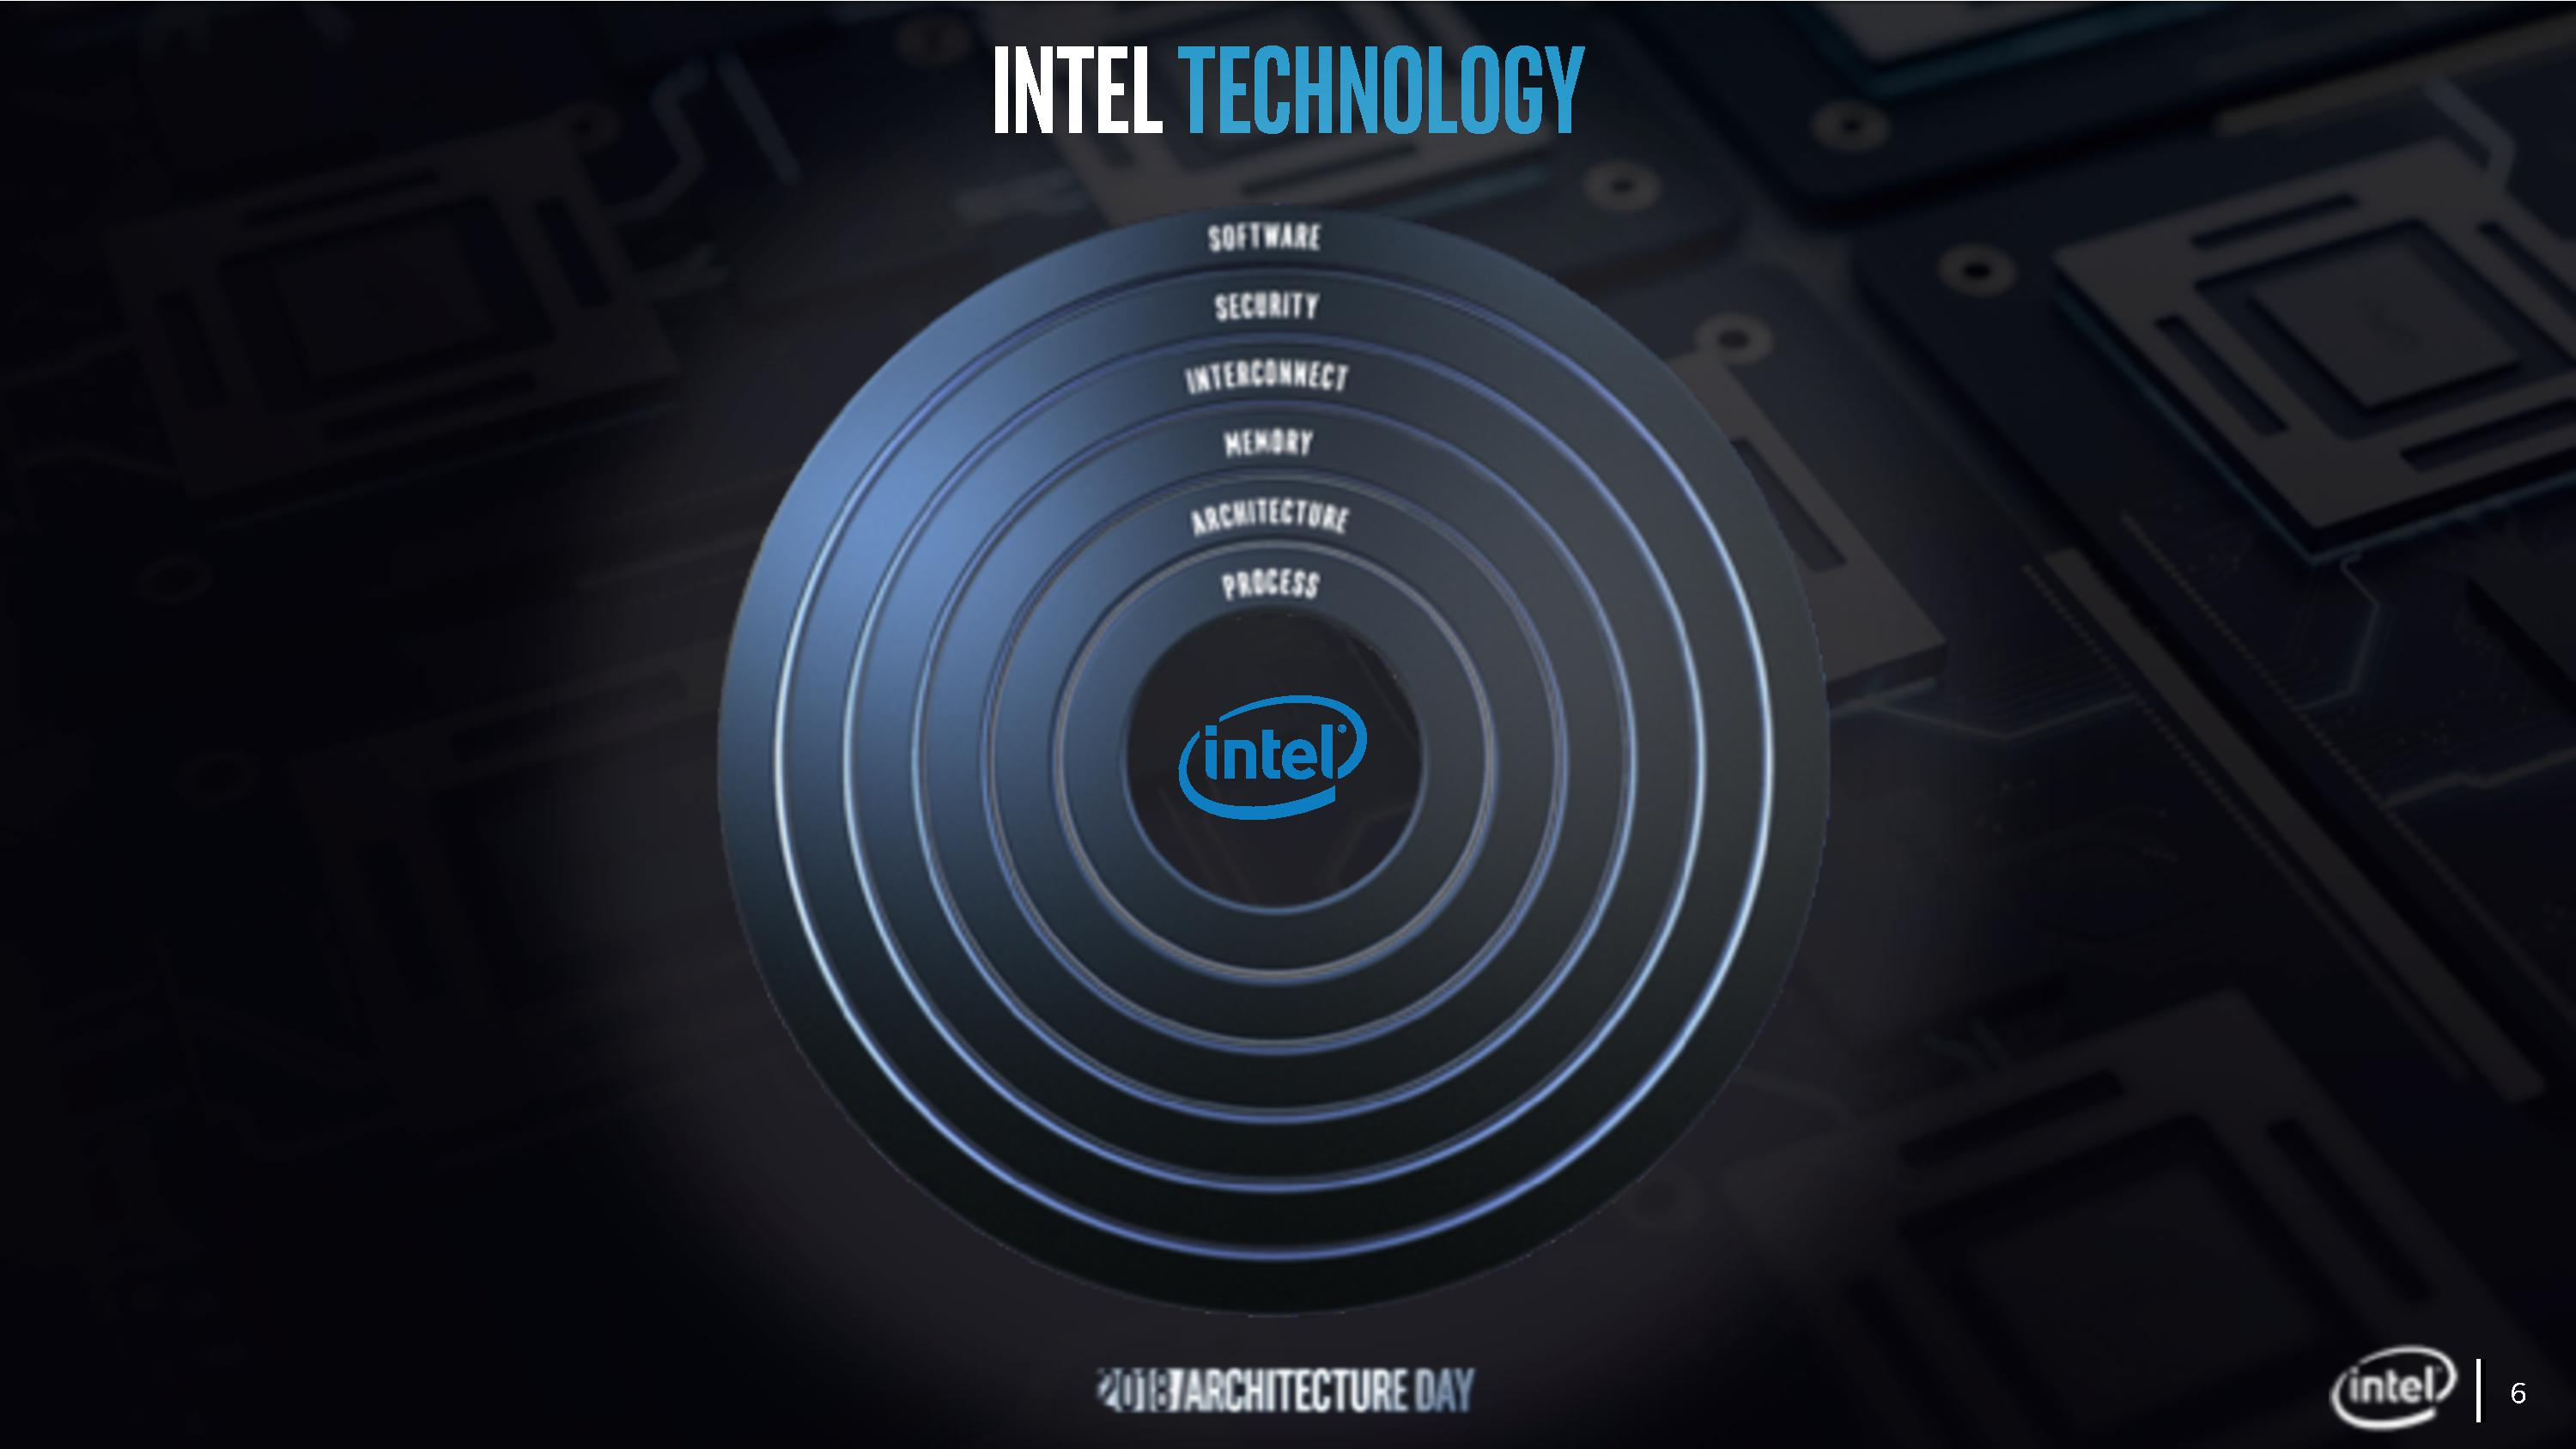 Sunny Cove is Intel's upcoming architecture for Core processors